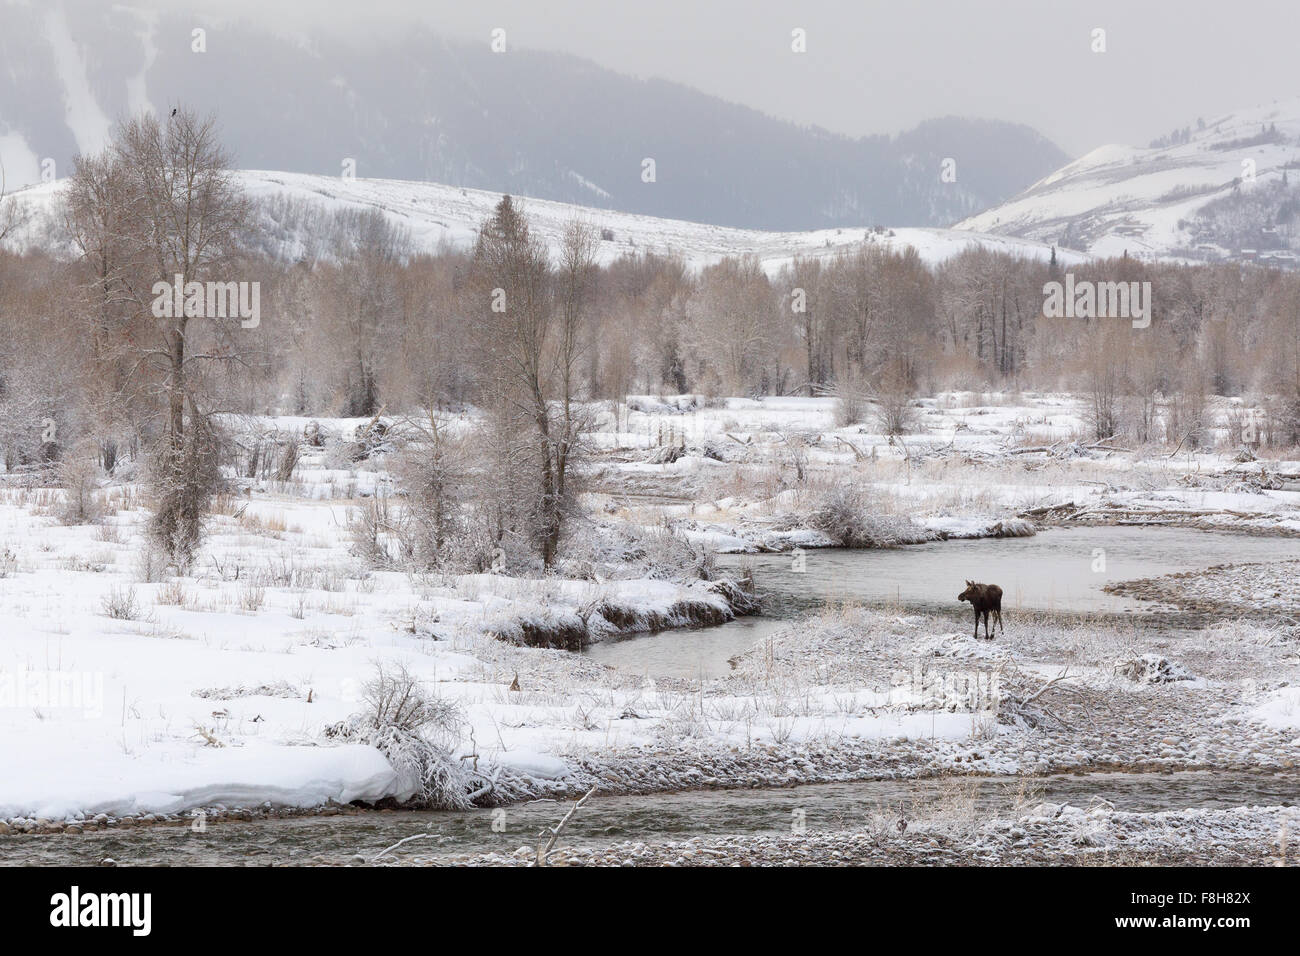 A moose calf stands alone in the Gros Ventre River, Grand Teton National Park, Wyoming - Stock Image